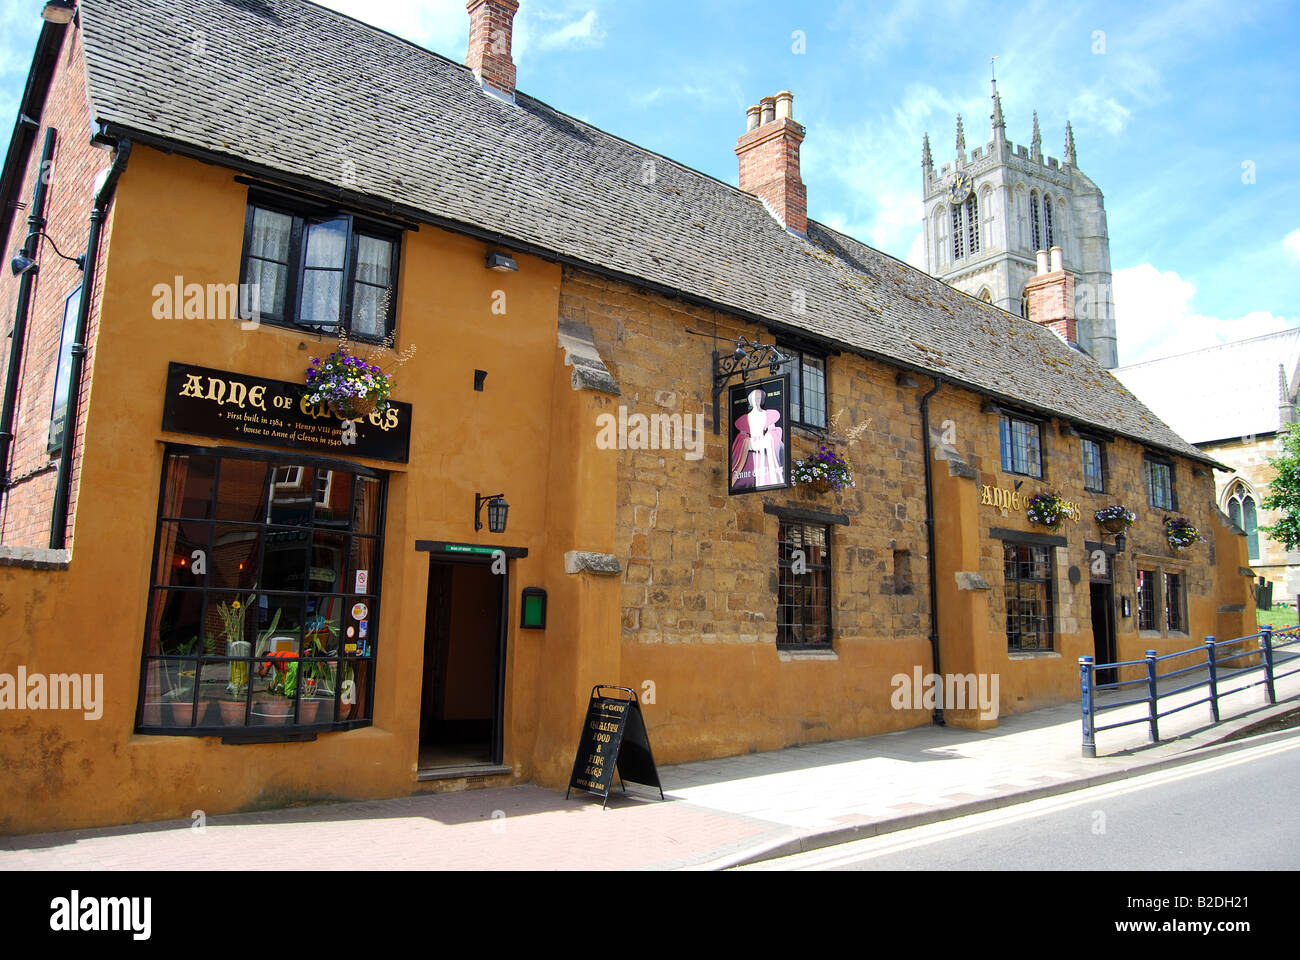 Melton mowbray leicestershire united kingdom